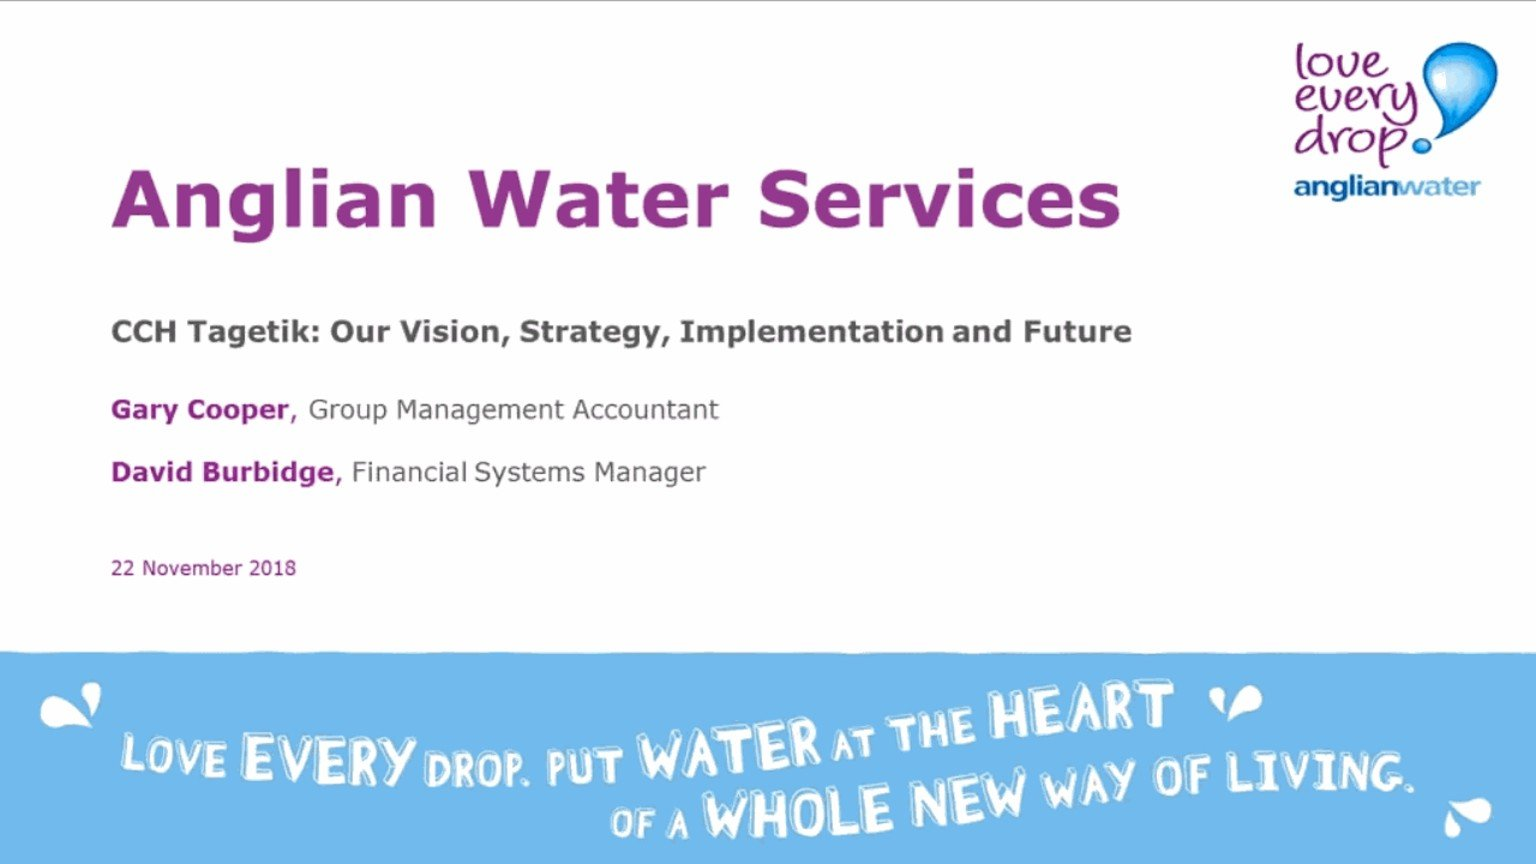 anglian_water_services_thumbnail